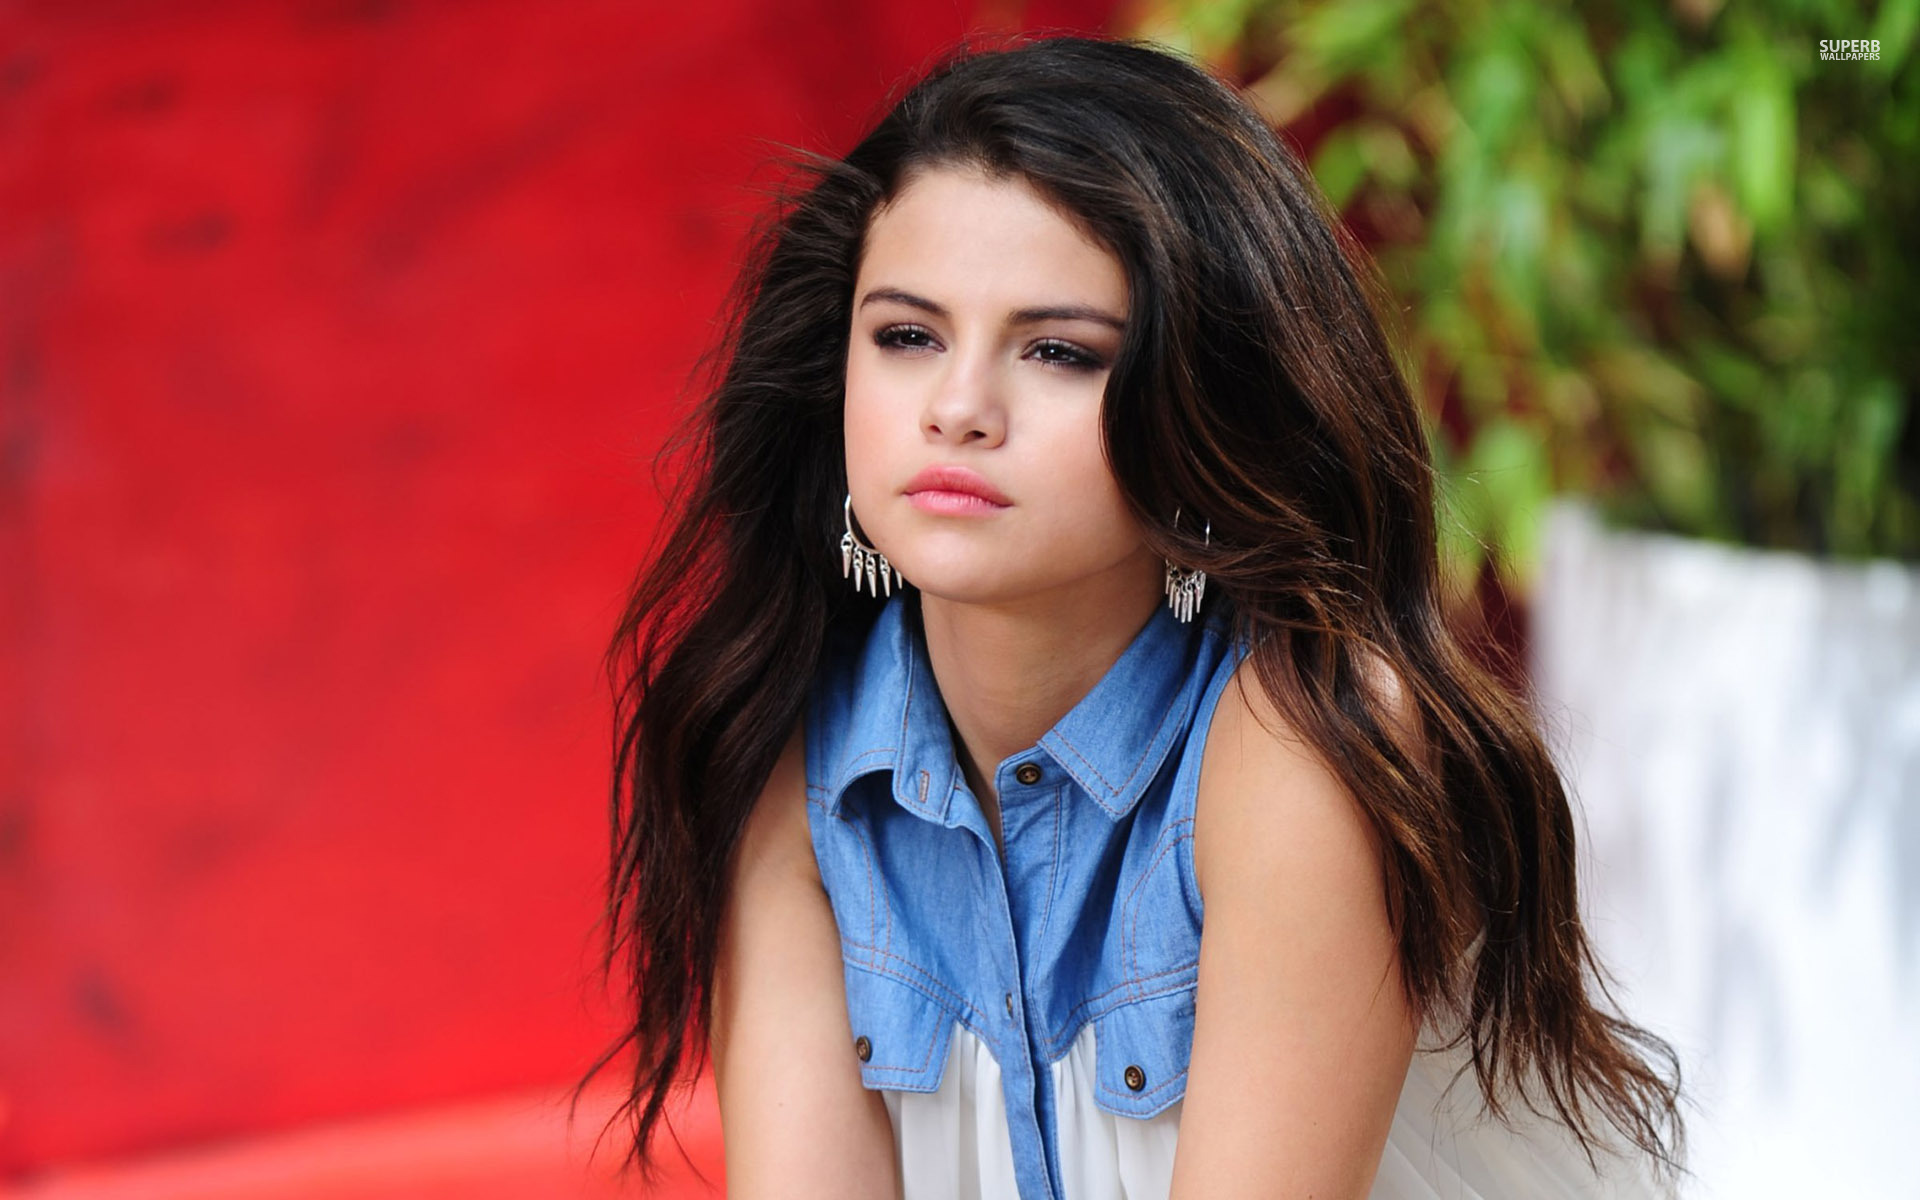 Selena Gomez Wallpapers High Resolution and Quality Download 1920x1200